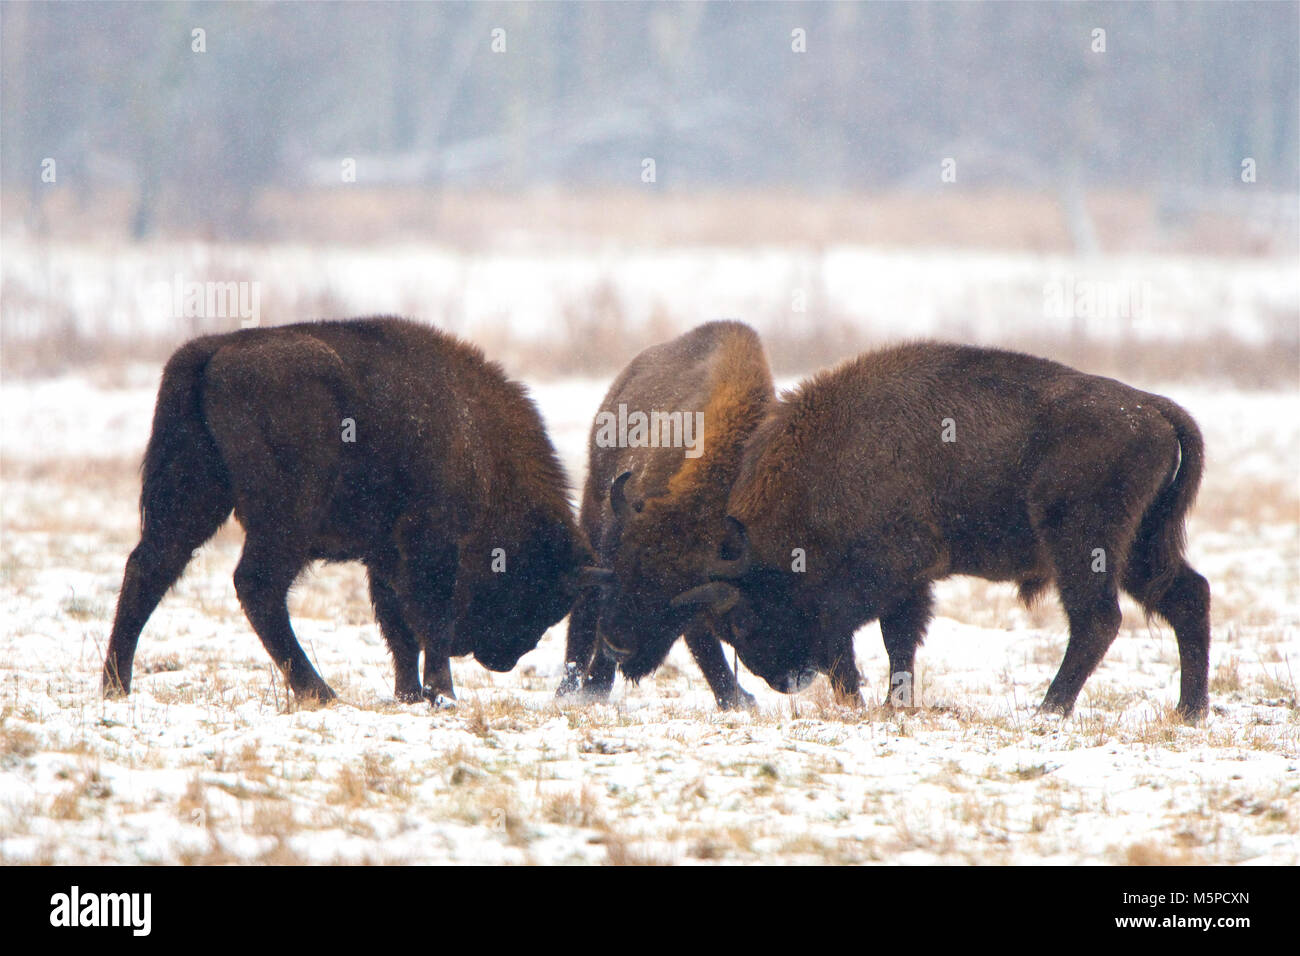 Three full-grown European Bison sparring, in a snowed wintery landscape, in Bialowieza National Park, in Poland. Stock Photo